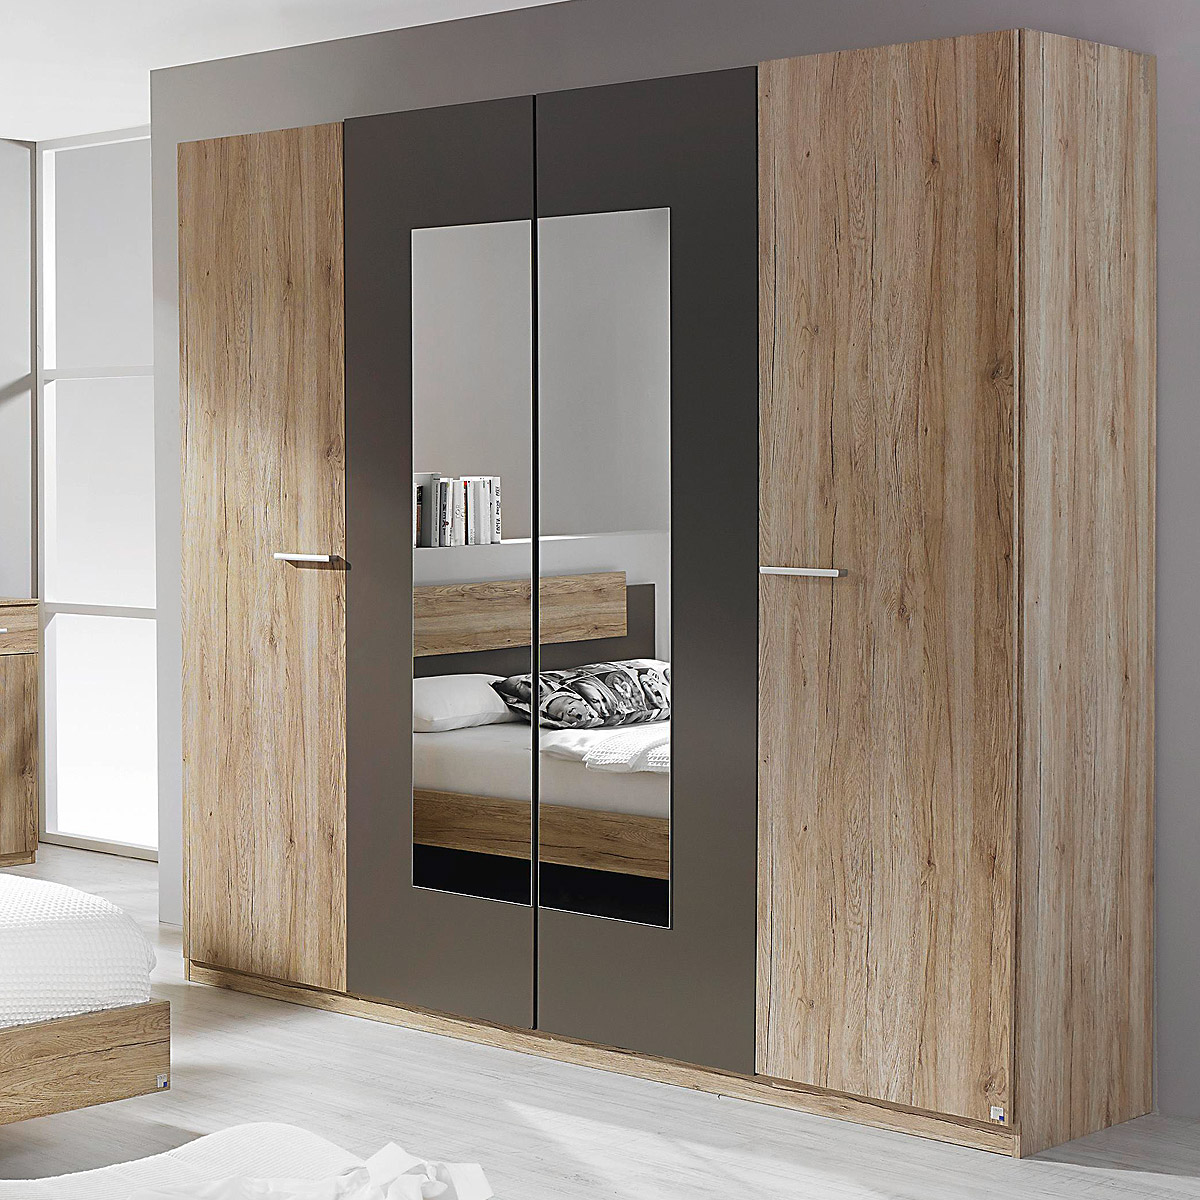 kleiderschrank borba schrank eiche sanremo hell lavagrau. Black Bedroom Furniture Sets. Home Design Ideas